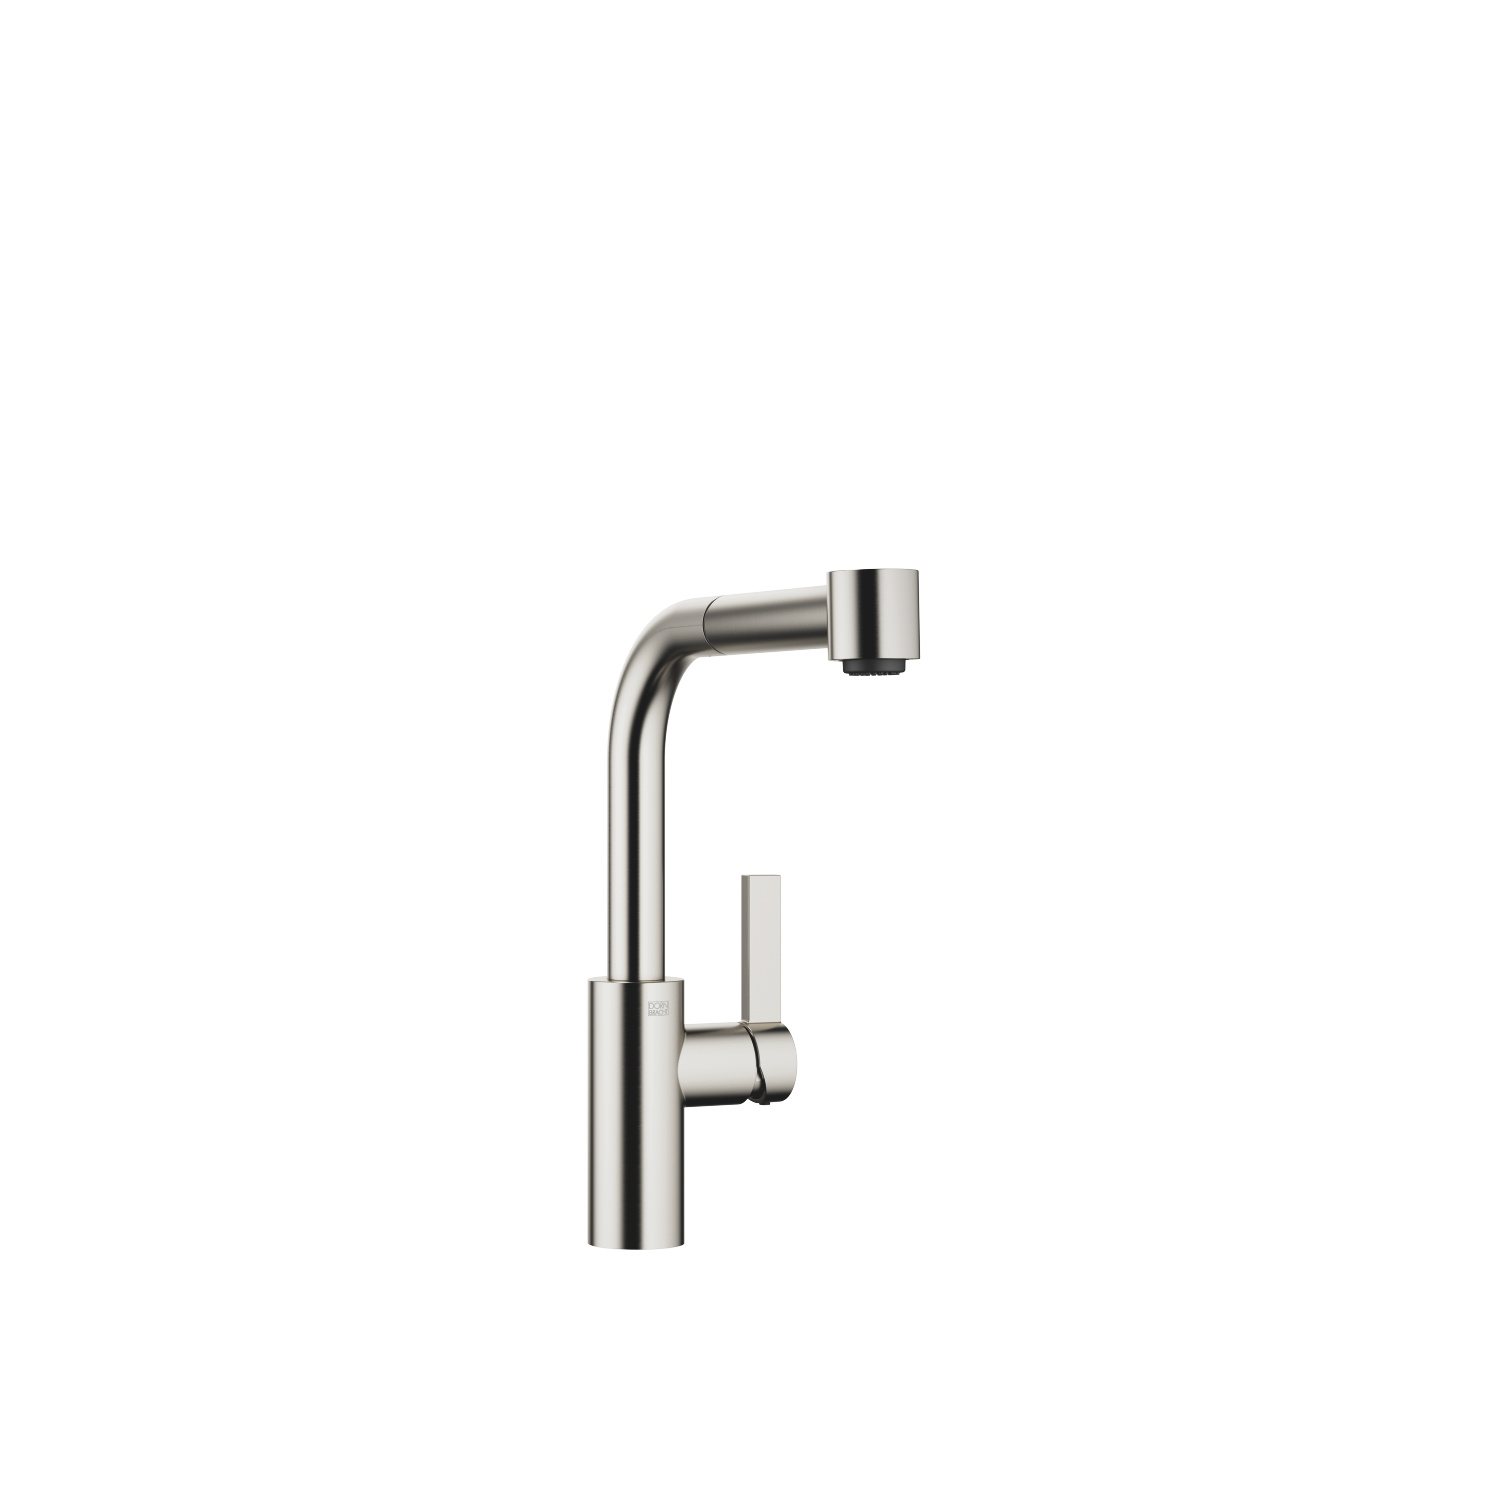 Single-lever mixer with pull-out spout with spray function - platinum matte